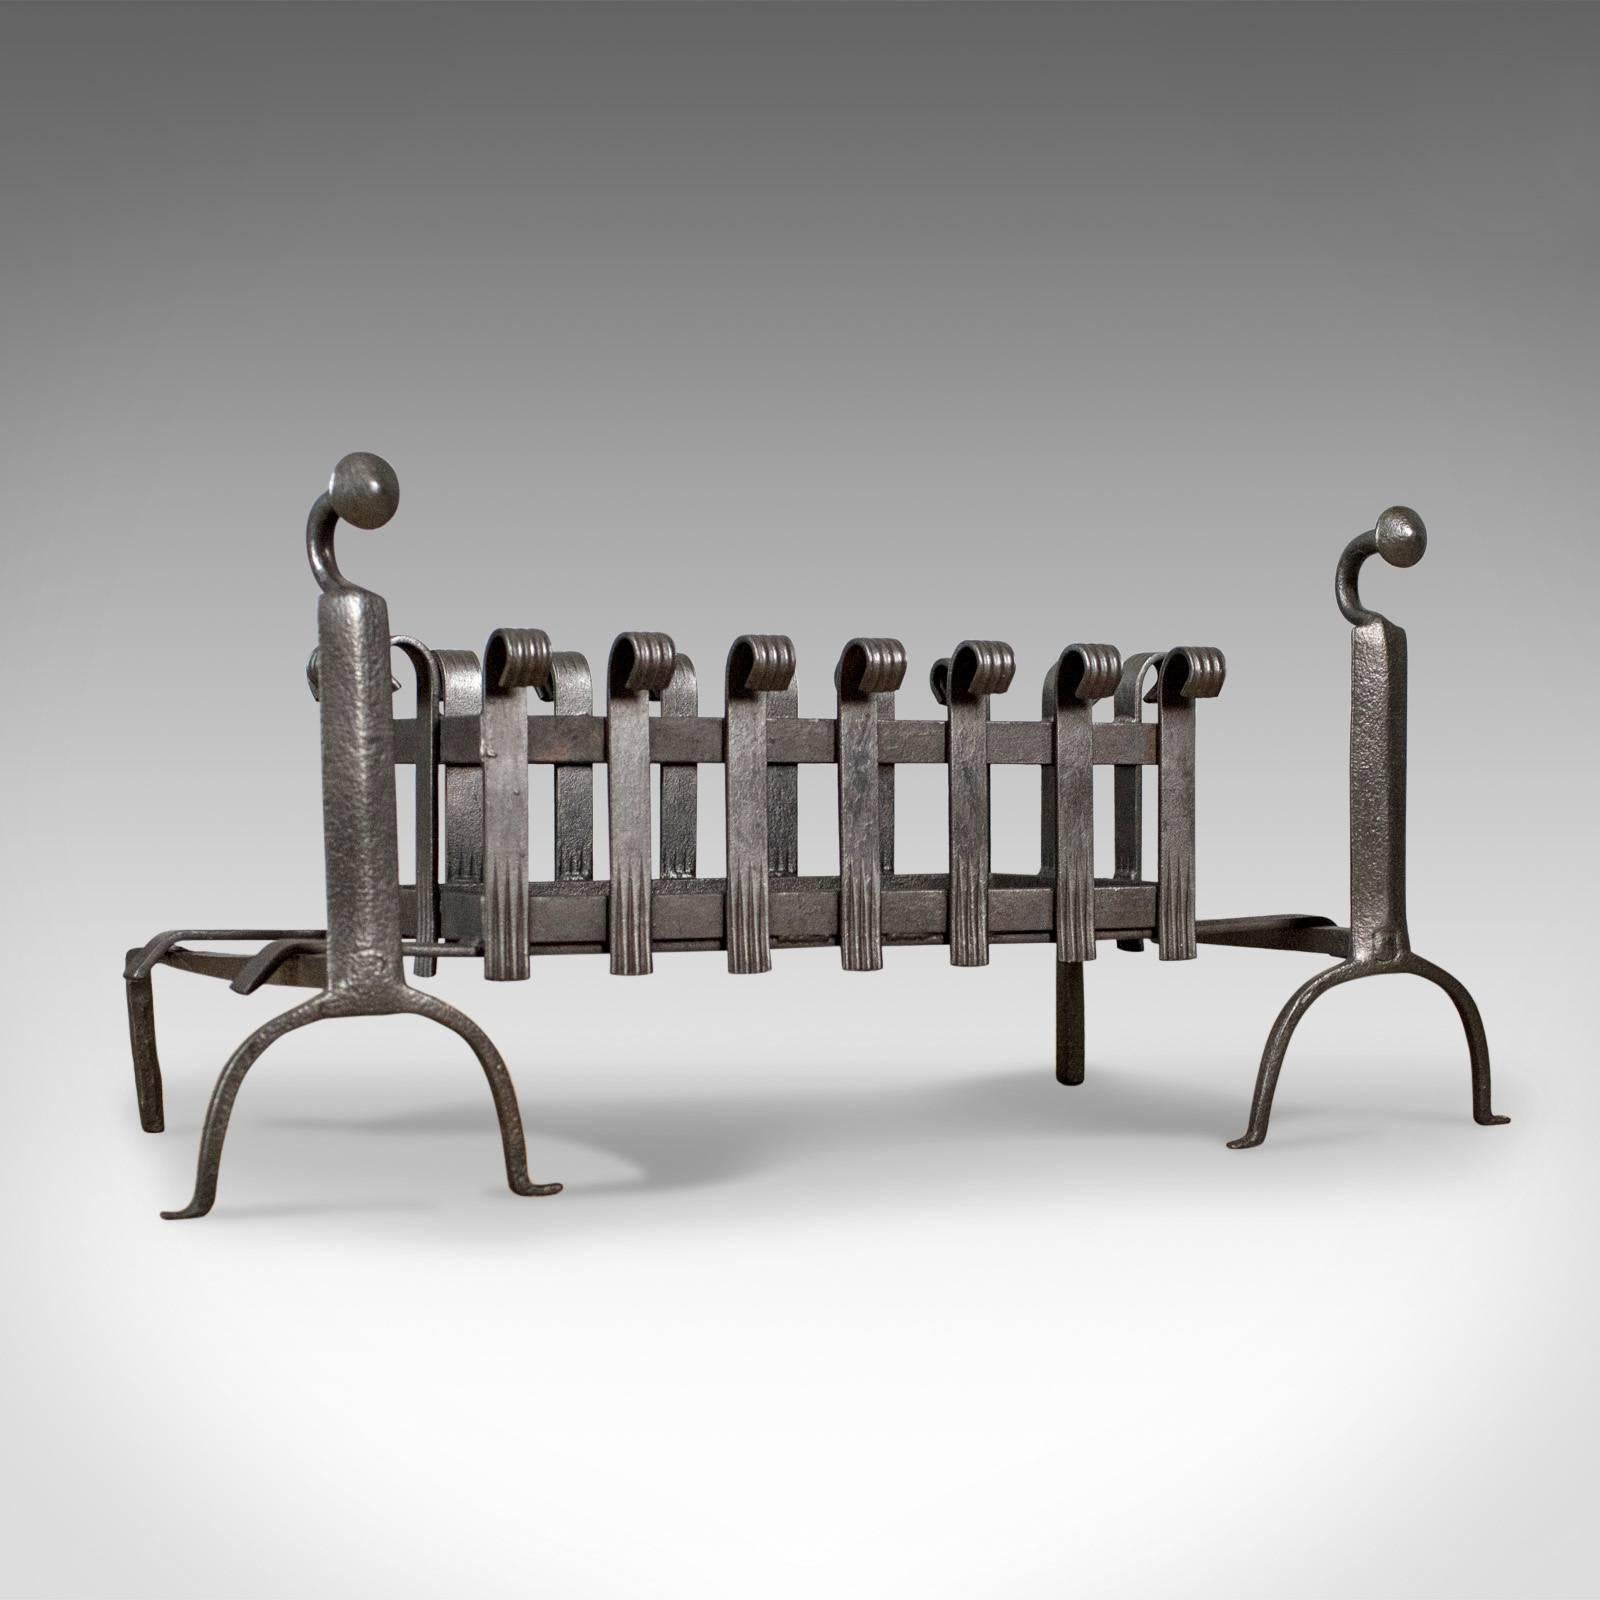 Solid Steel Fire Basket Fire Andiron Dog Grate 3 SIZES Fireplace Fire Grate